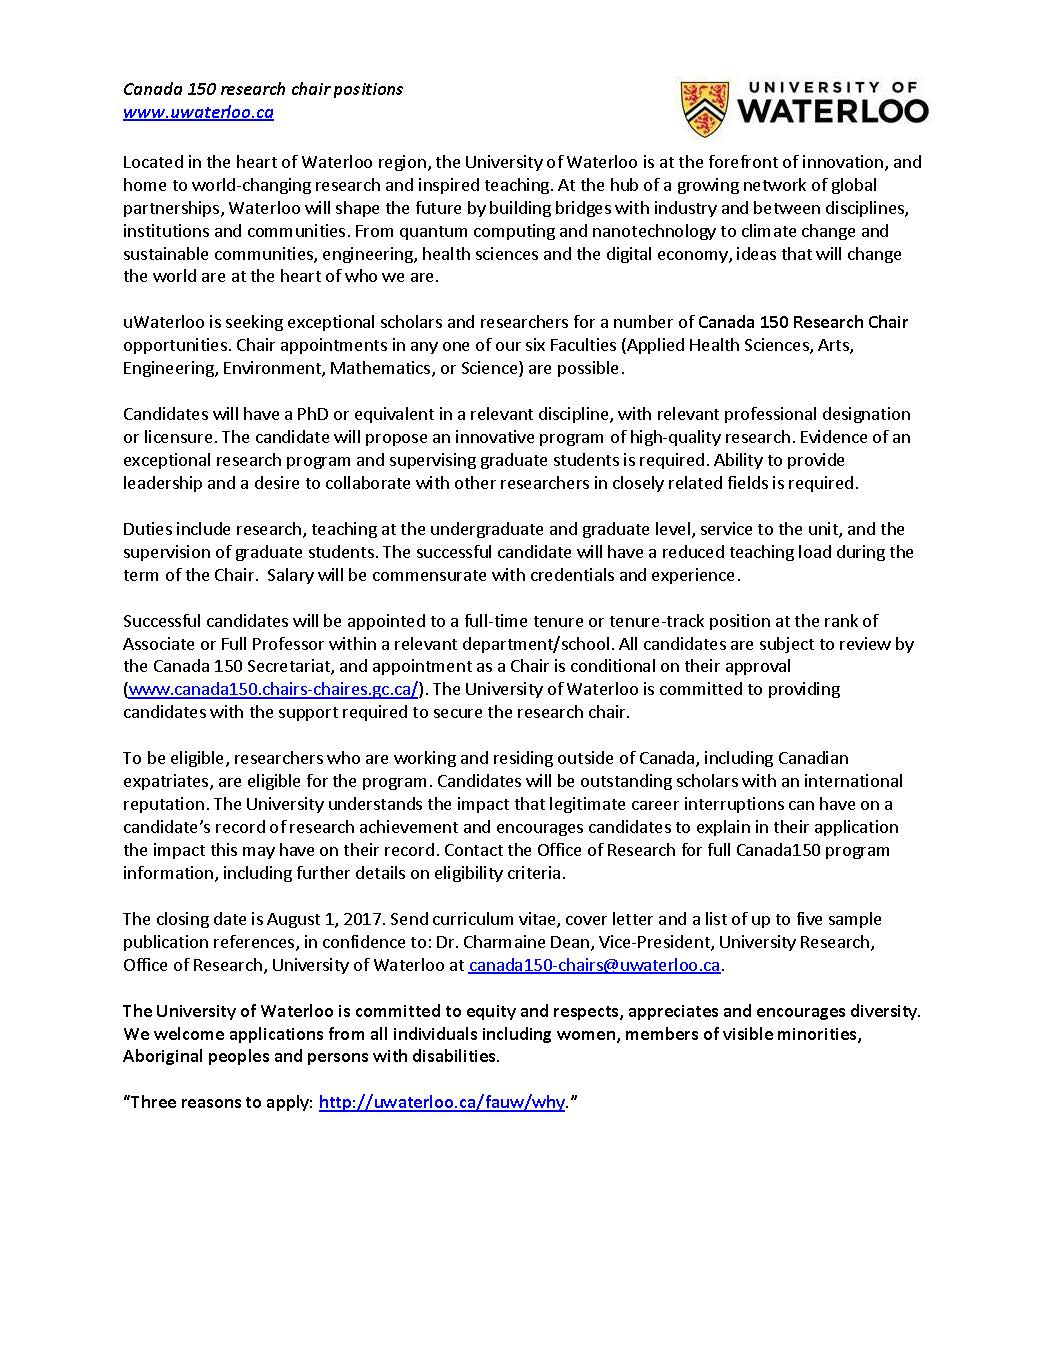 Phd Positions In Canada